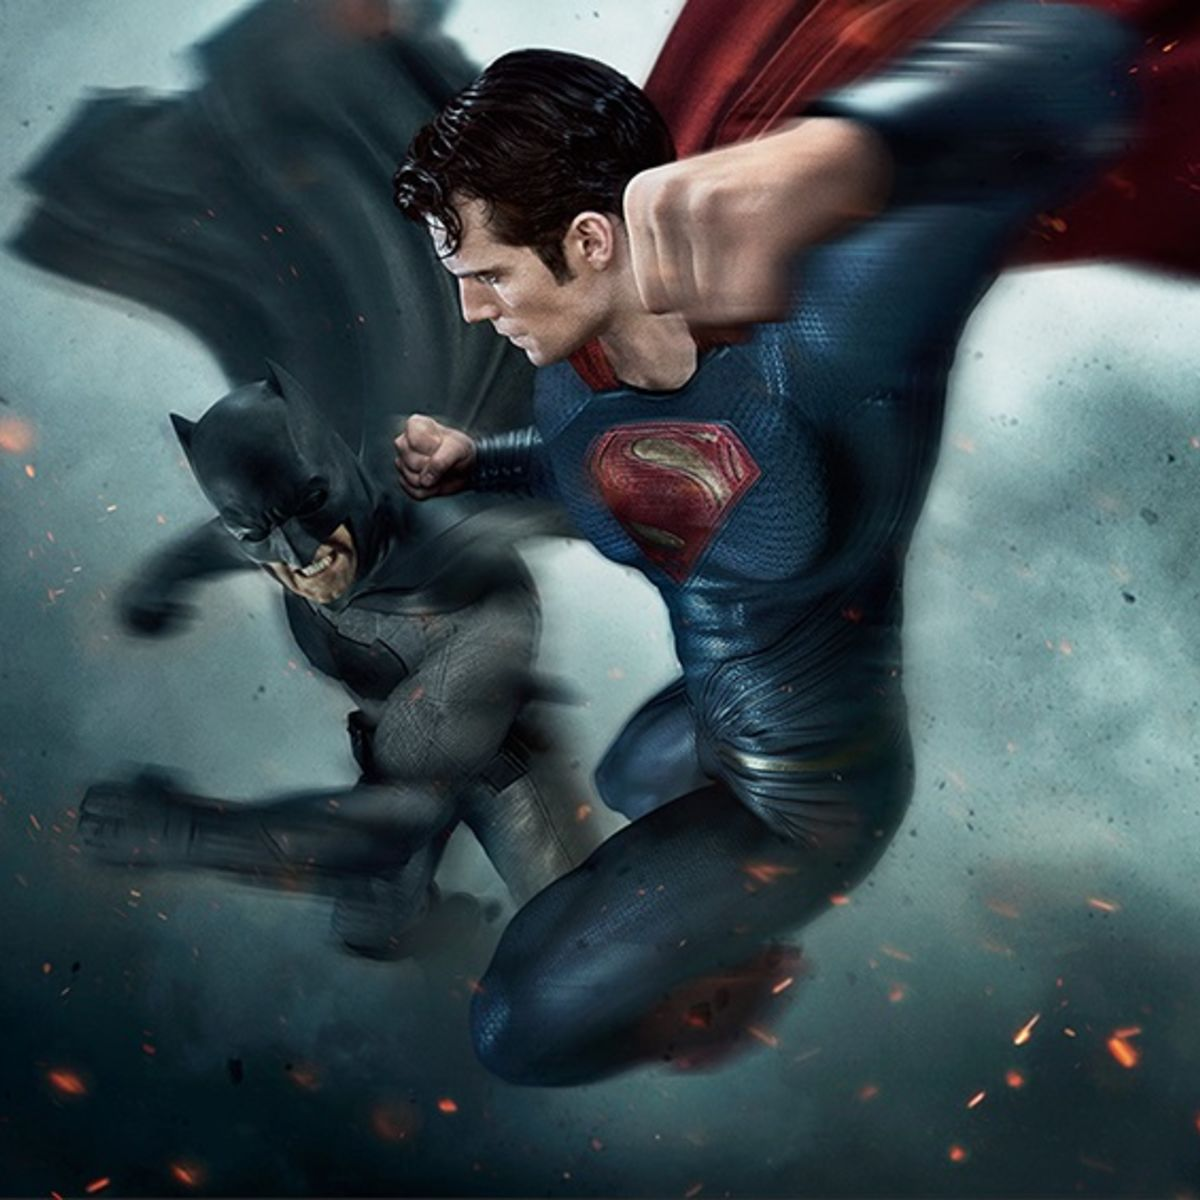 Batman-v-superman-fight.jpg